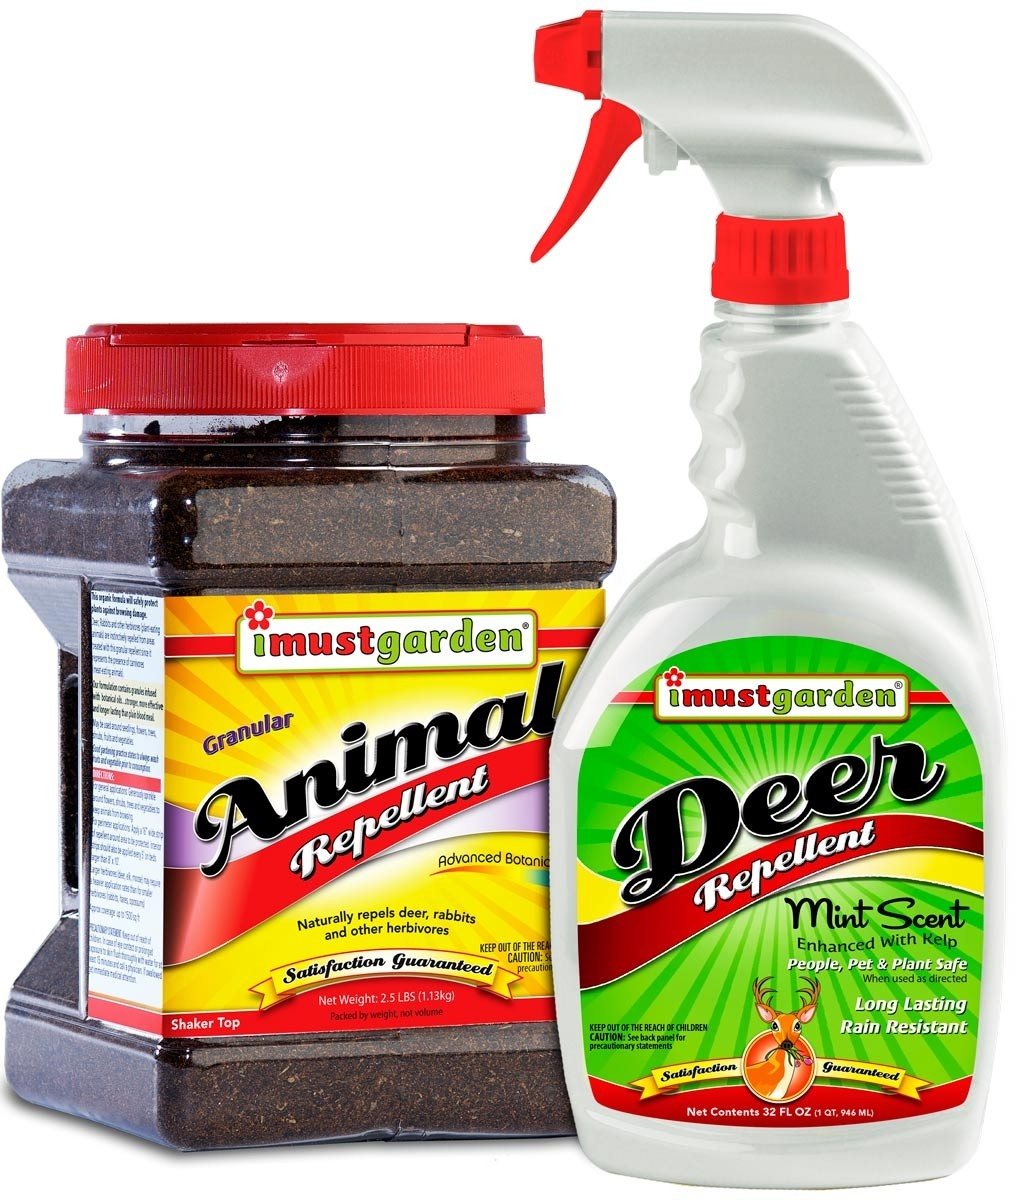 Deer Defense -Save money and defeat deer by bundling 2 of our most popular repellents: - 32oz Ready-to-Use Trigger Spray Deer Repellent, -2.5lb Granular Animal with Shaker Top